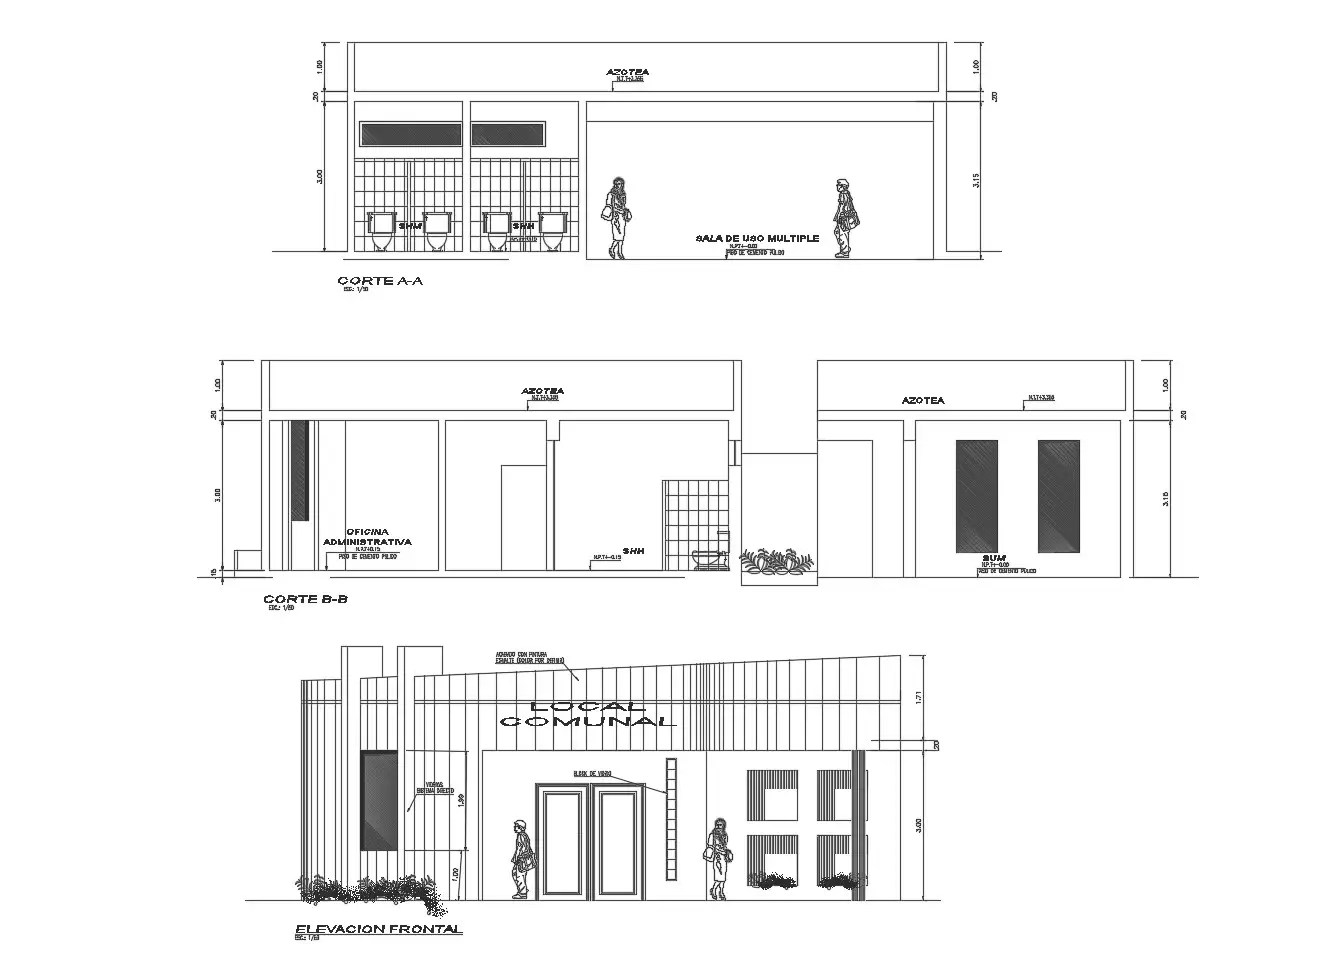 Elevation drawing of the office building with detail